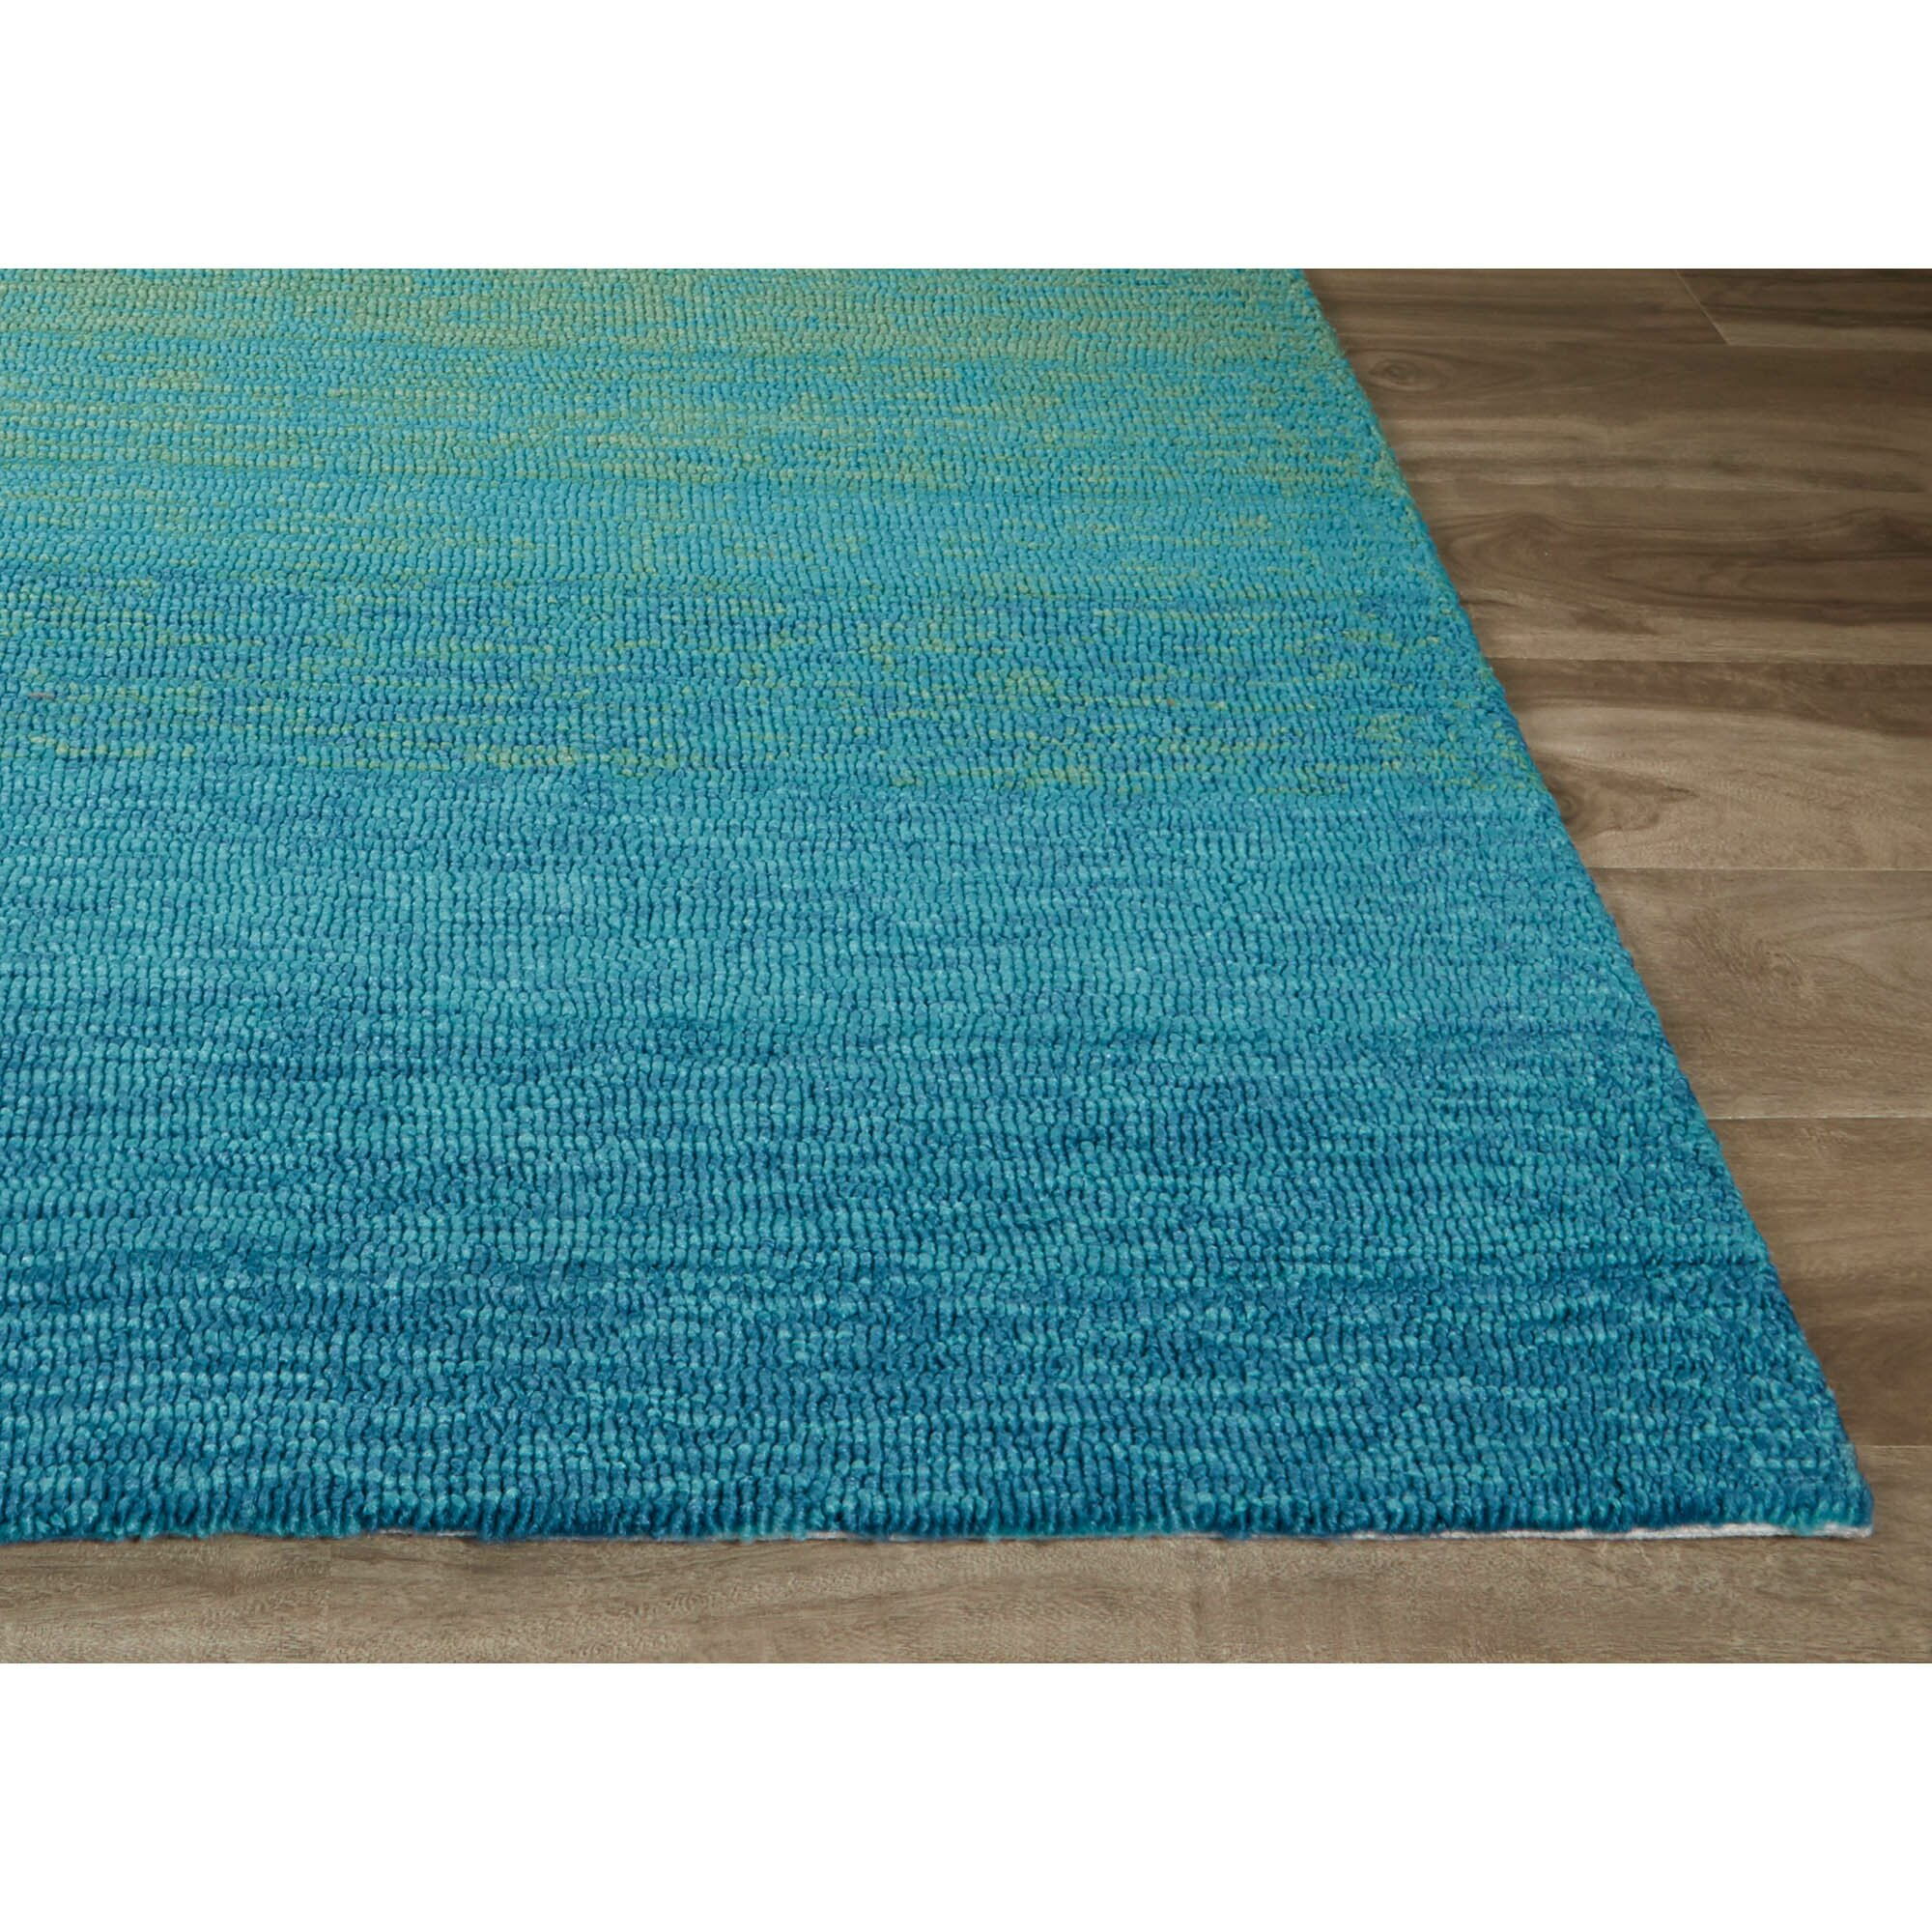 Jaipurliving catalina blue green indoor outdoor area rug for Indoor outdoor carpet green